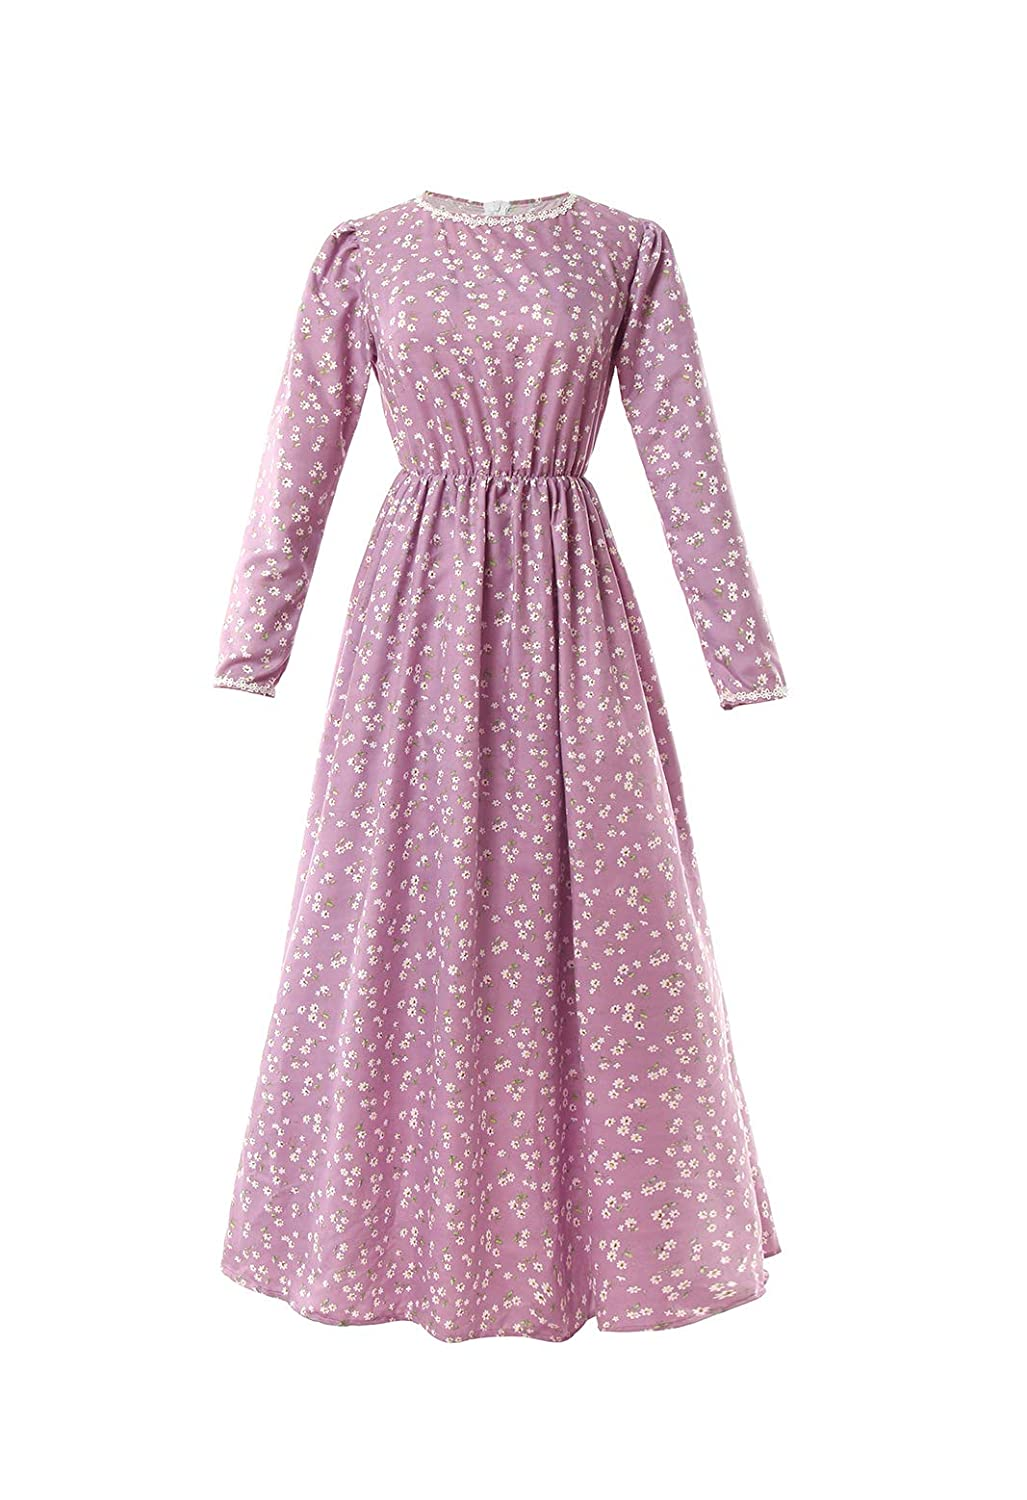 Old Fashioned Dresses | Old Dress Styles  Dress Deluxe Colonial Dress Laura Ingalls Costume ROLECOS Pioneer Women Costume Floral Prairie $35.99 AT vintagedancer.com